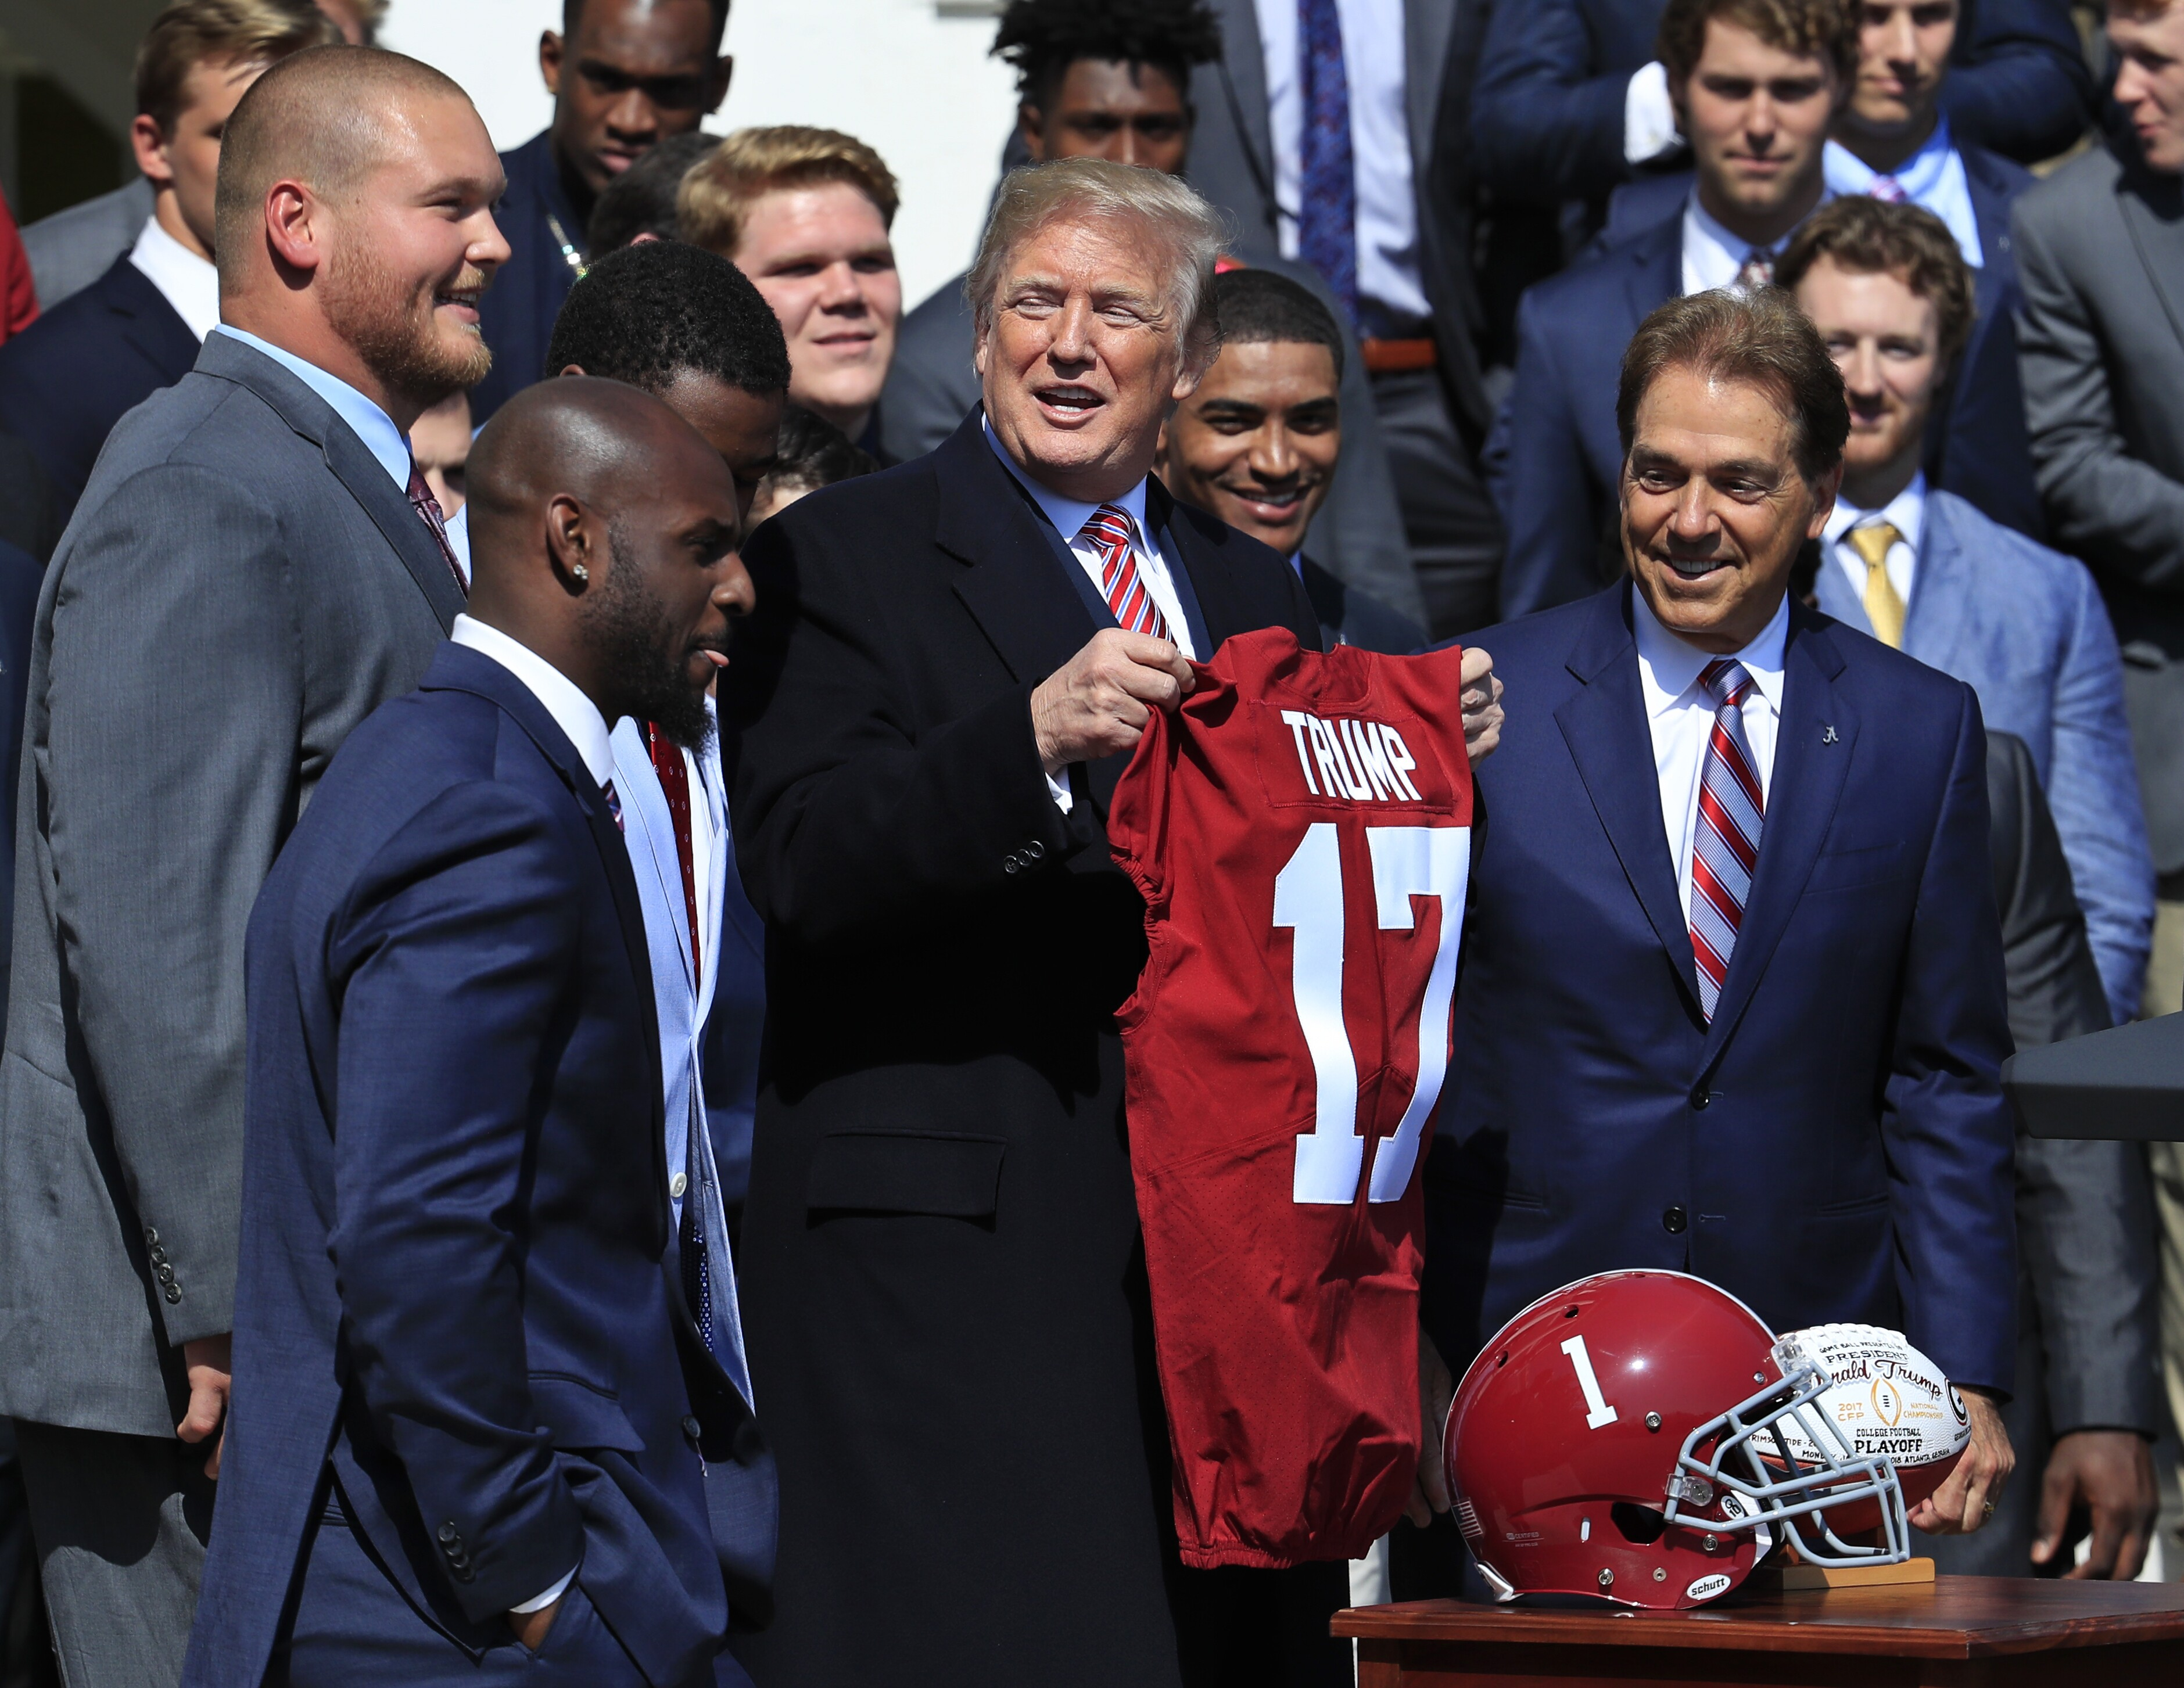 sports shoes 76ae9 ef5ac Alabama football champs 'honored' to visit White House; no ...